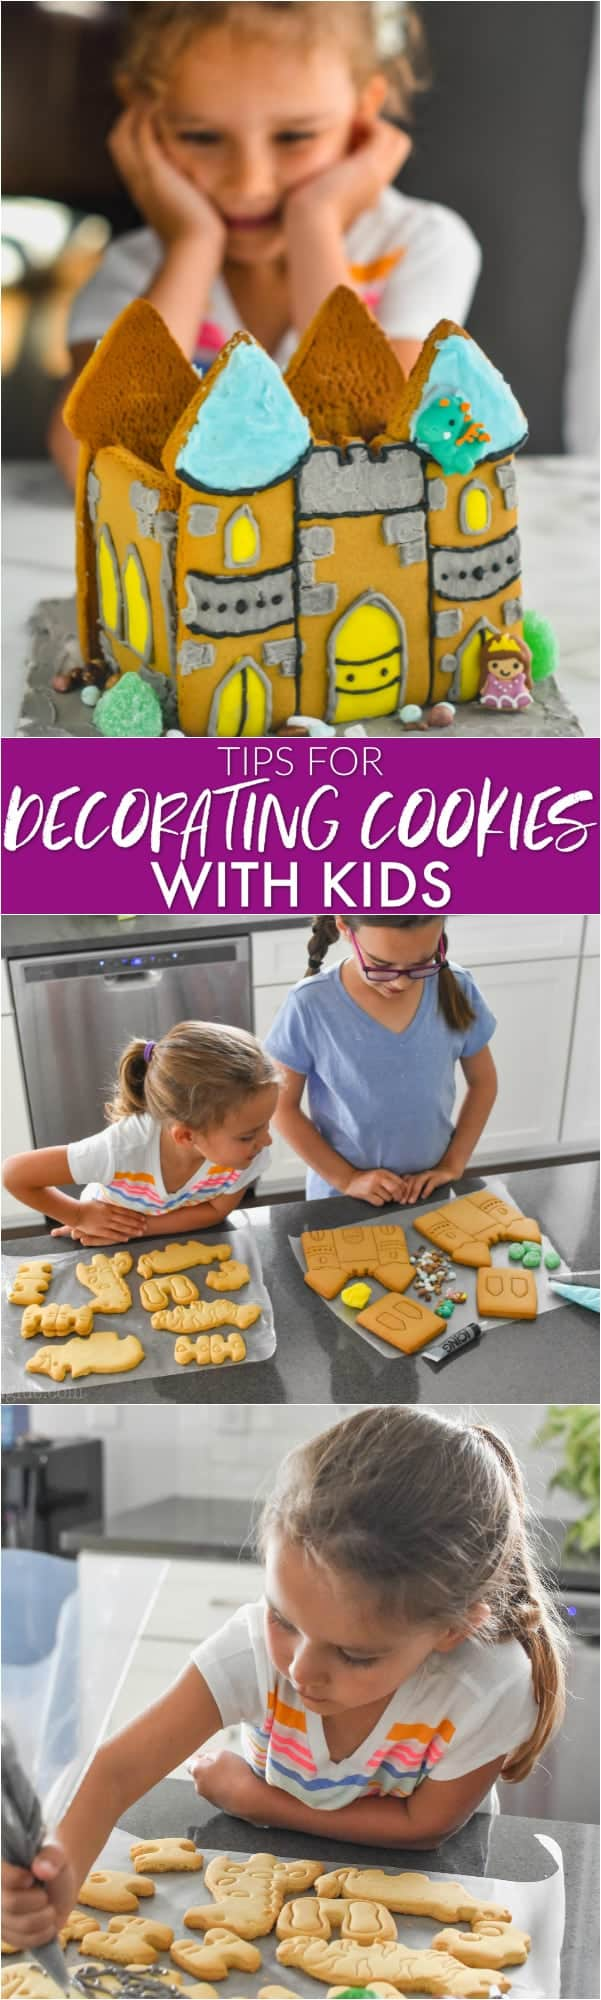 collage of photos of kids decorating cookies